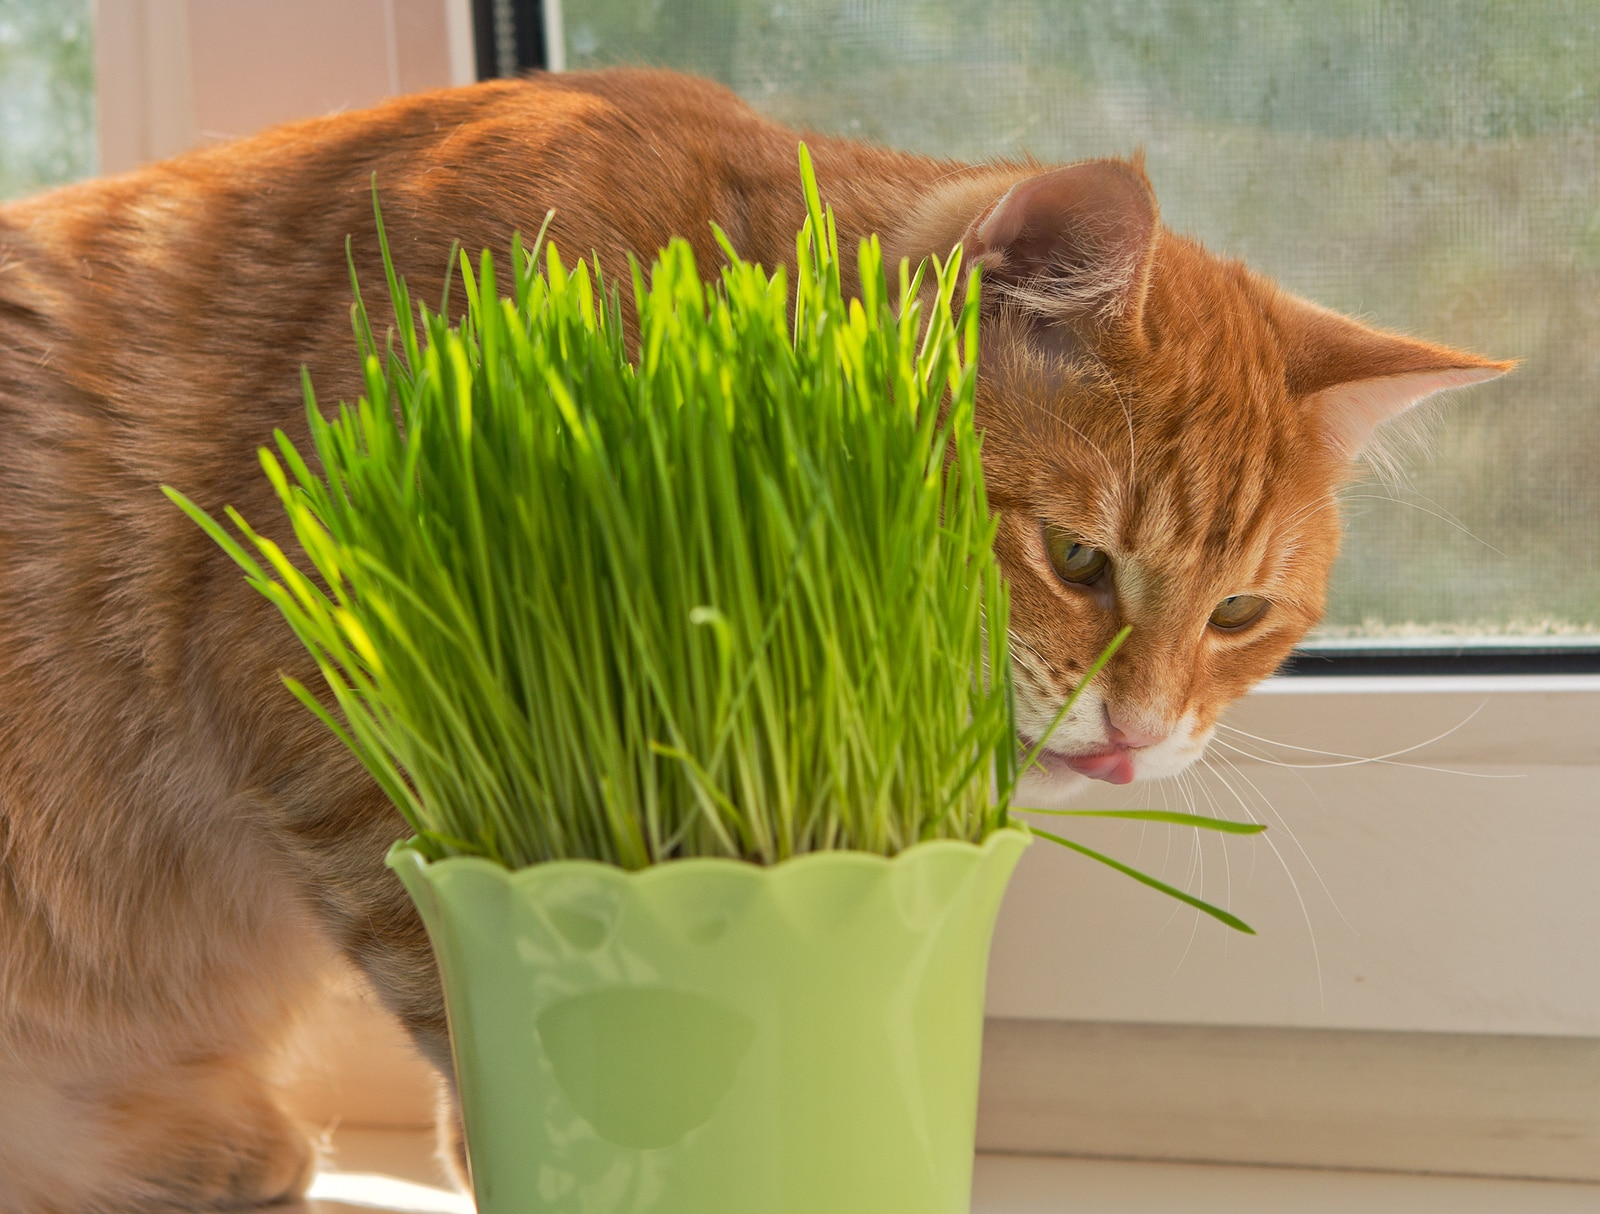 Orange tabby walks behind a vase of cat grass.